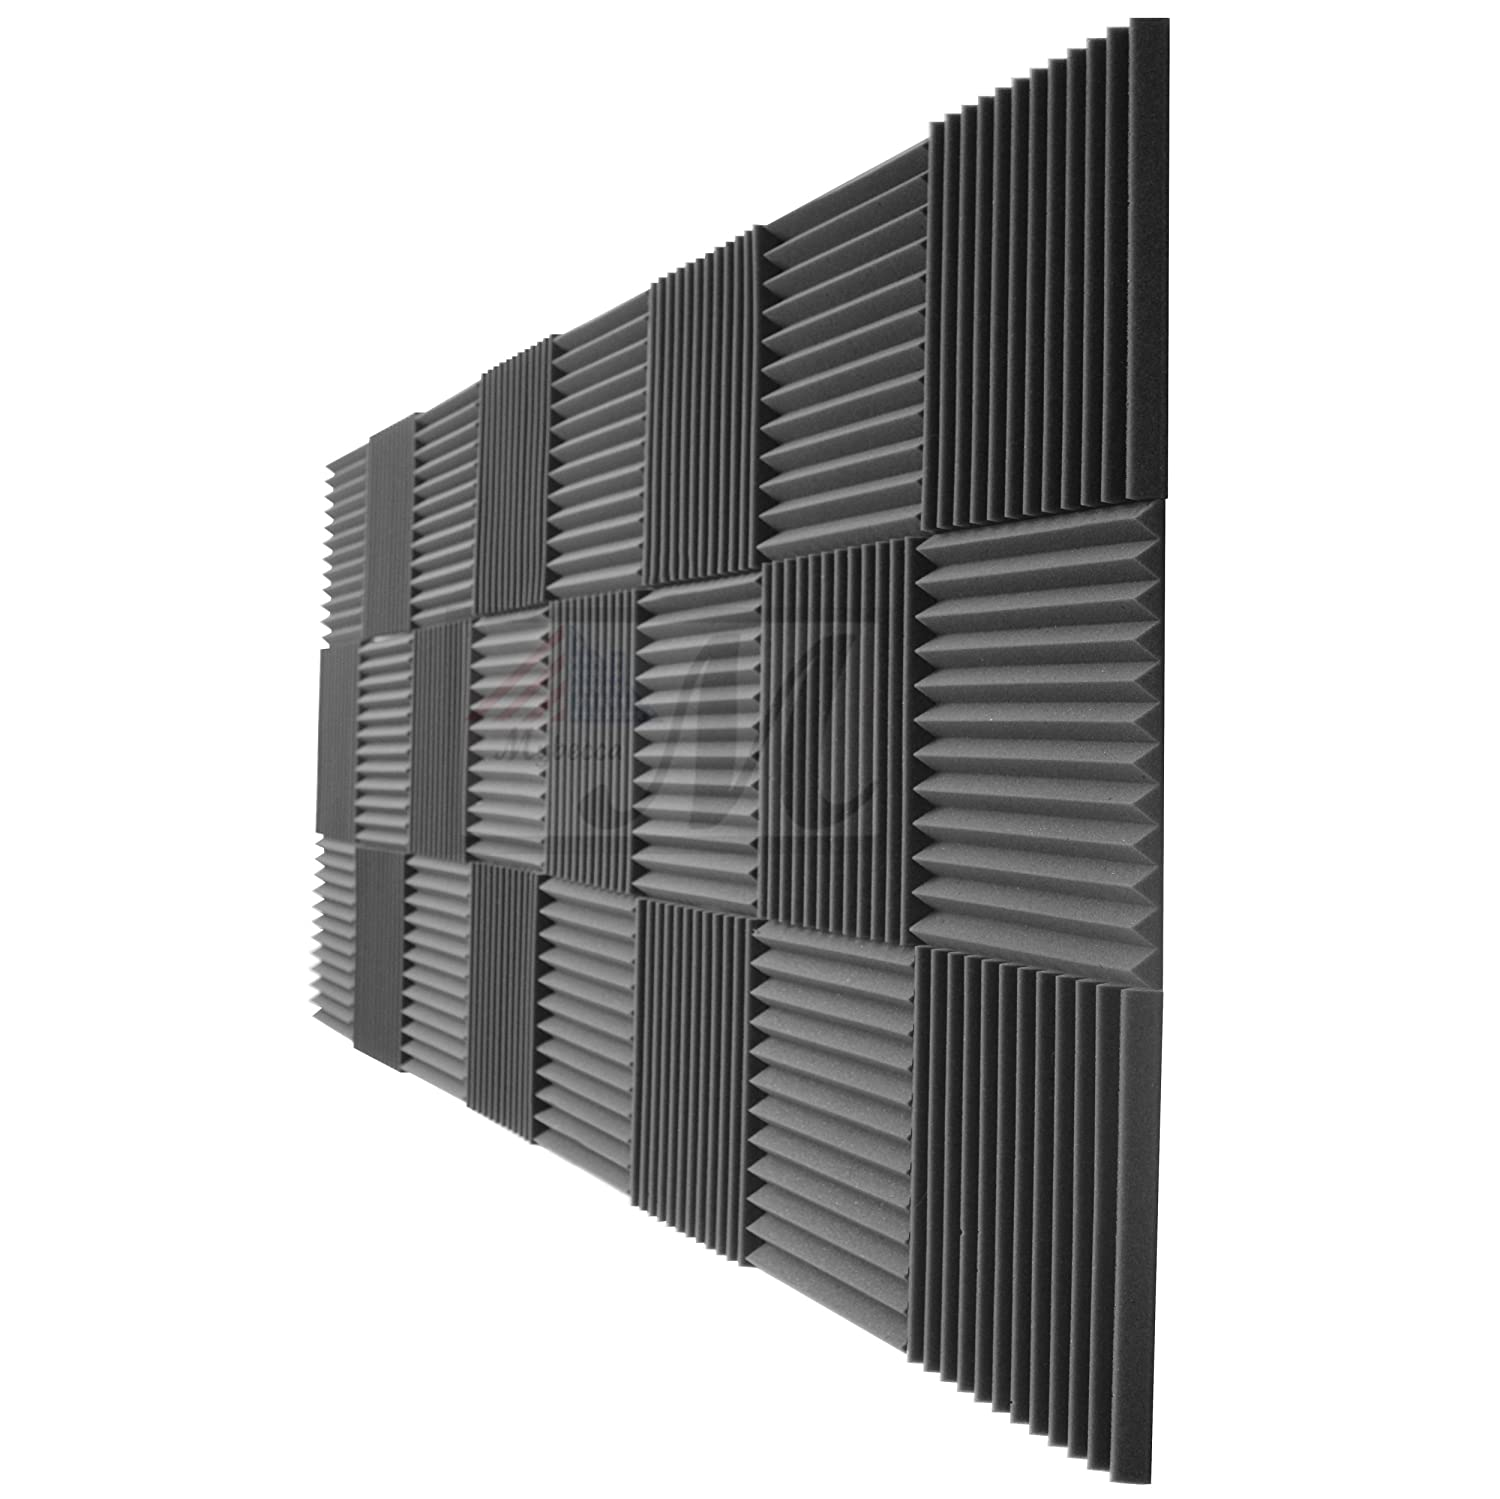 soundproof wall panels raul glen farris image sound proof insulation lowes decorative wall. Black Bedroom Furniture Sets. Home Design Ideas